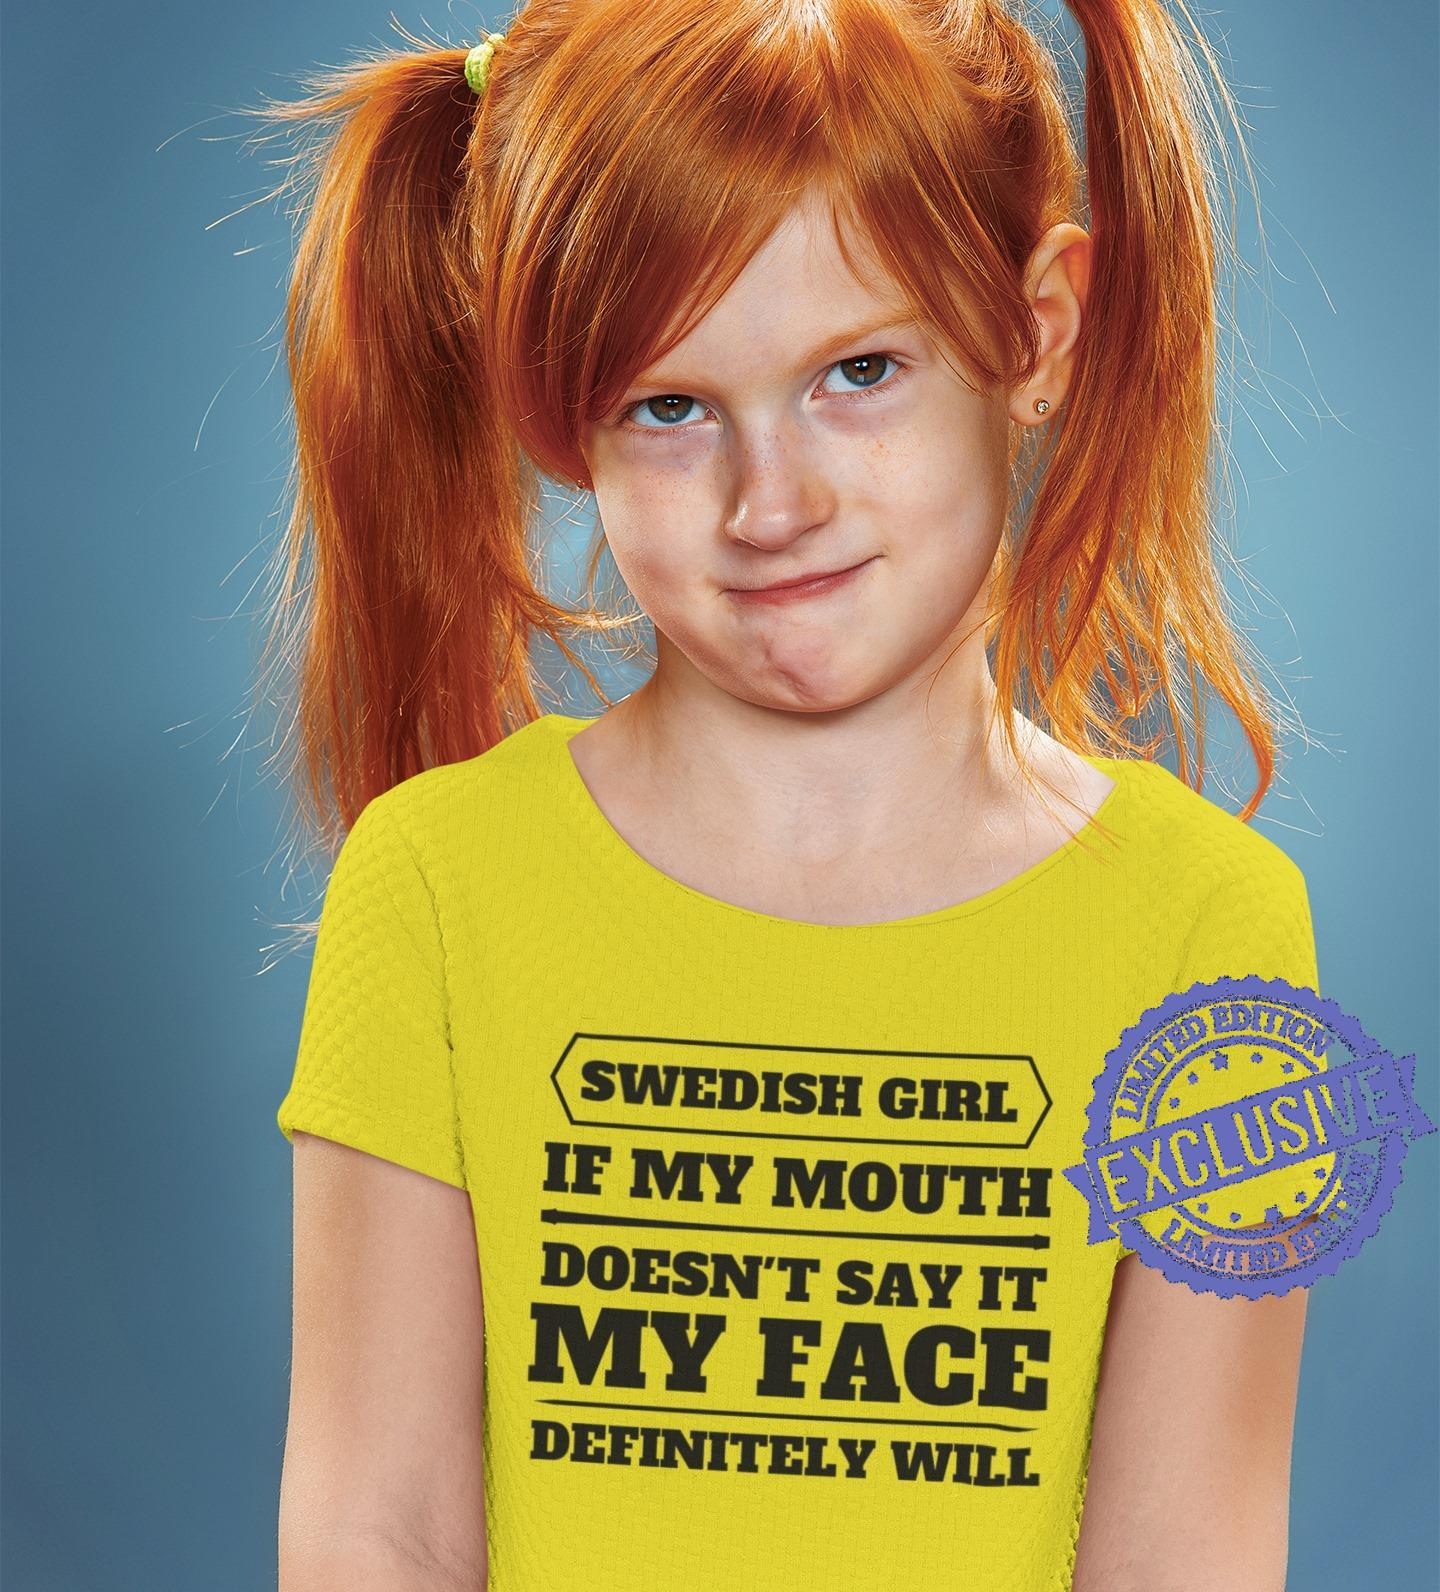 Swedish girl if my mouth doesn't say it my face definitely will shirt